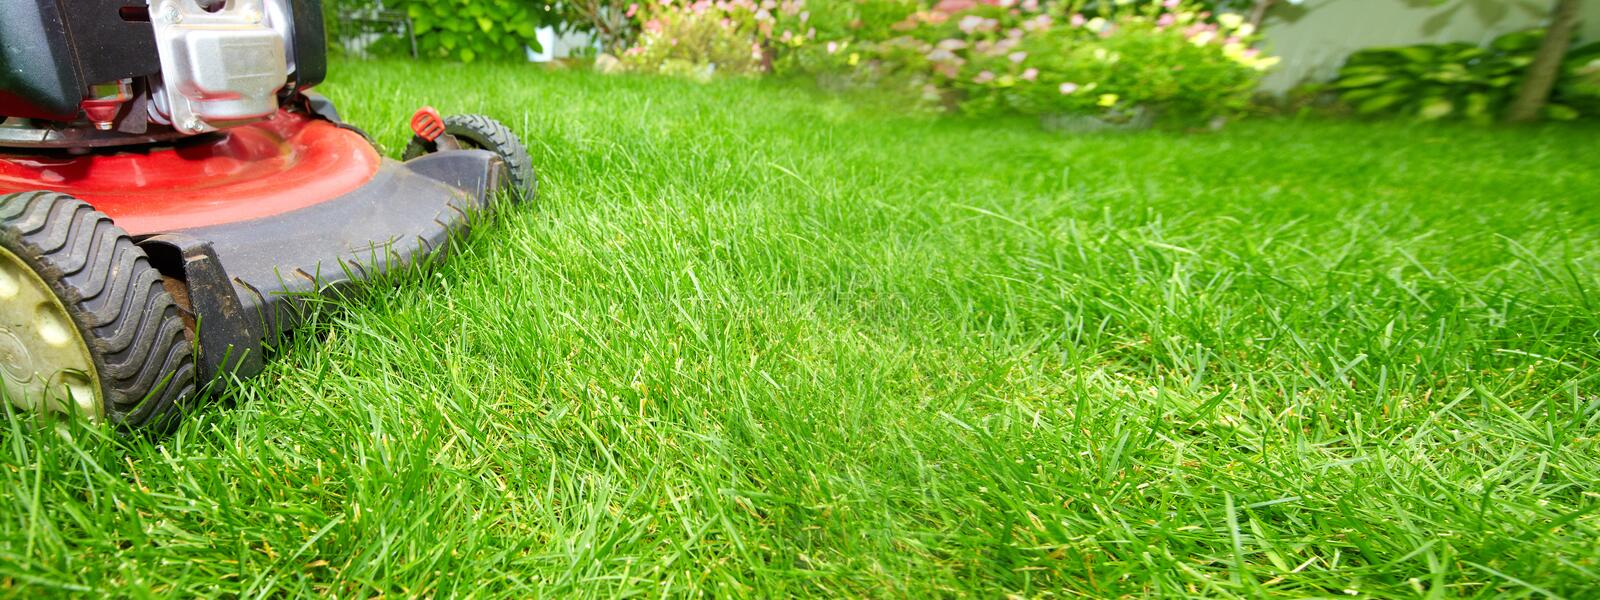 Lawn mower. Cutting green grass in backyard background royalty free stock photo